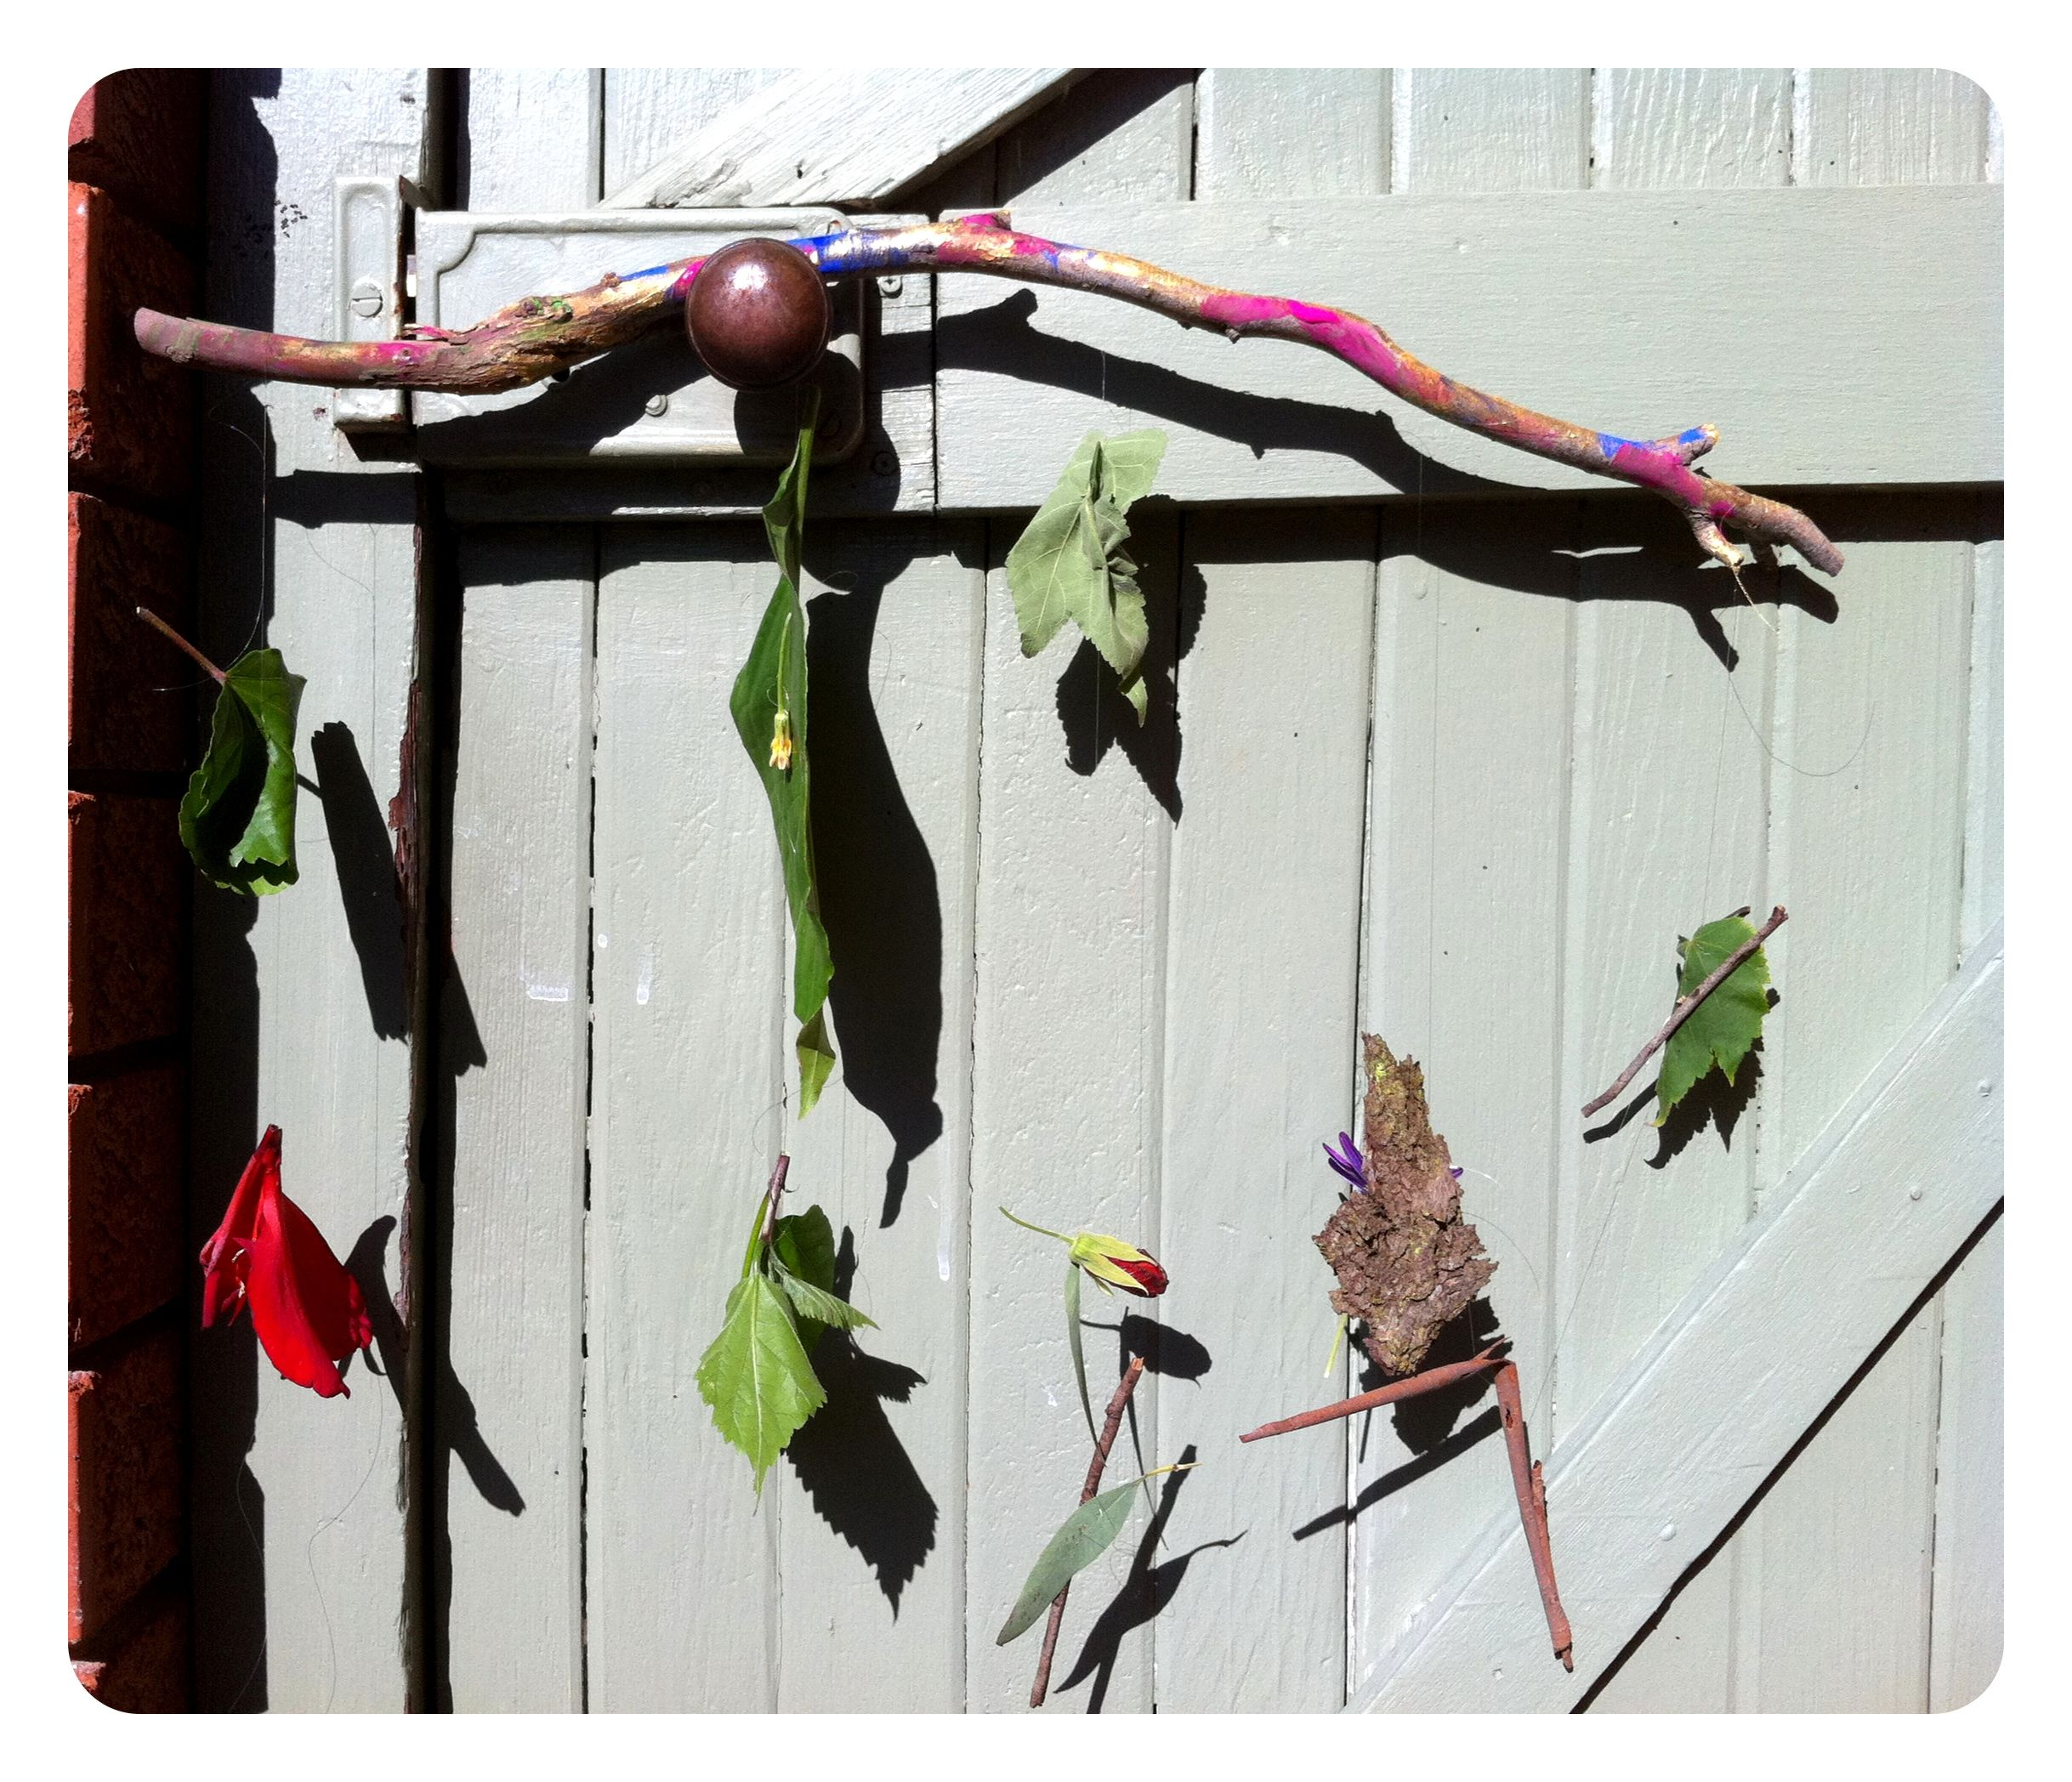 Nature walk art one perfect day i like the idea of displaying it in the backyard on the fence